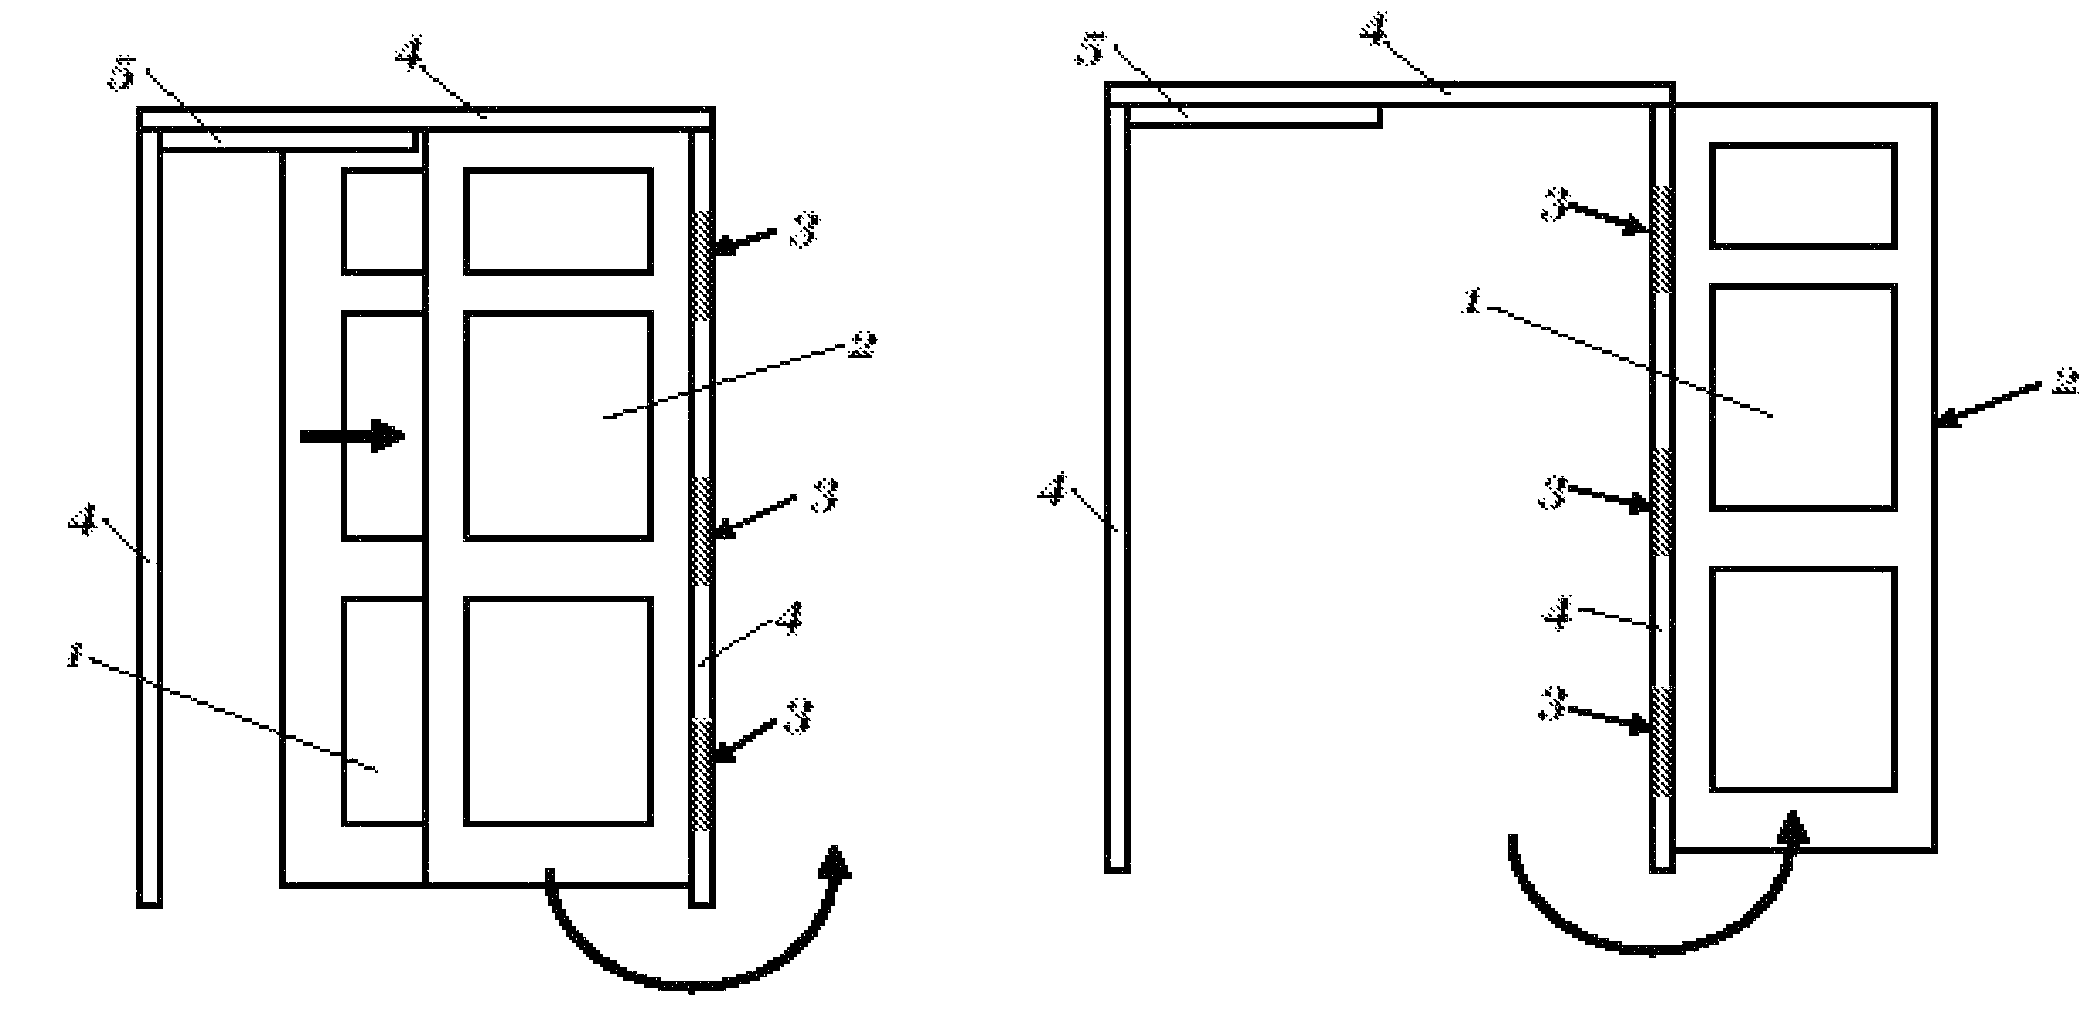 Swing Hinges Patent Us7950439 Combination Action Slide And Hinge Swinging